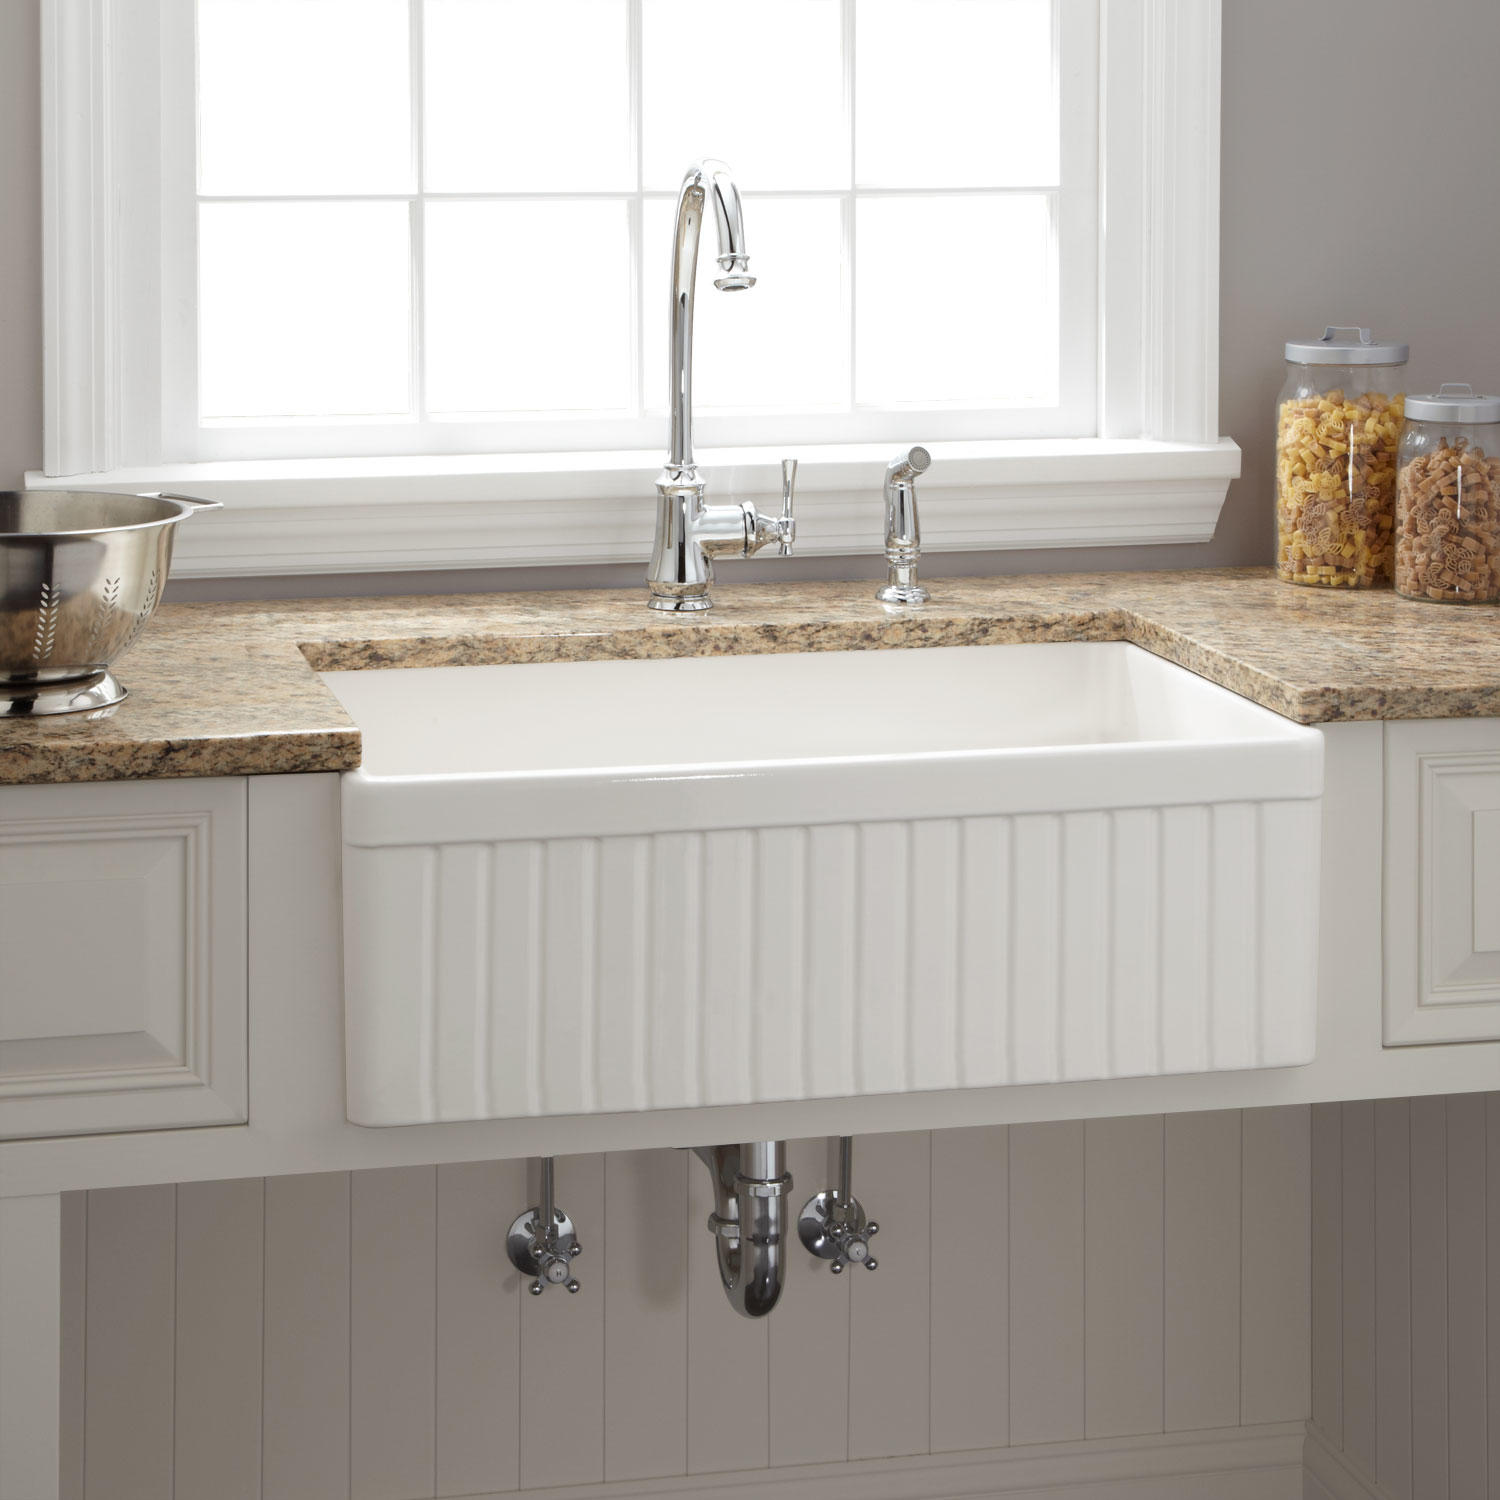 Rectangle White Apron Sink Plus Faucet On Brown Countertop Before The Grey Wall With White Window For Kitchen Decor Ideas